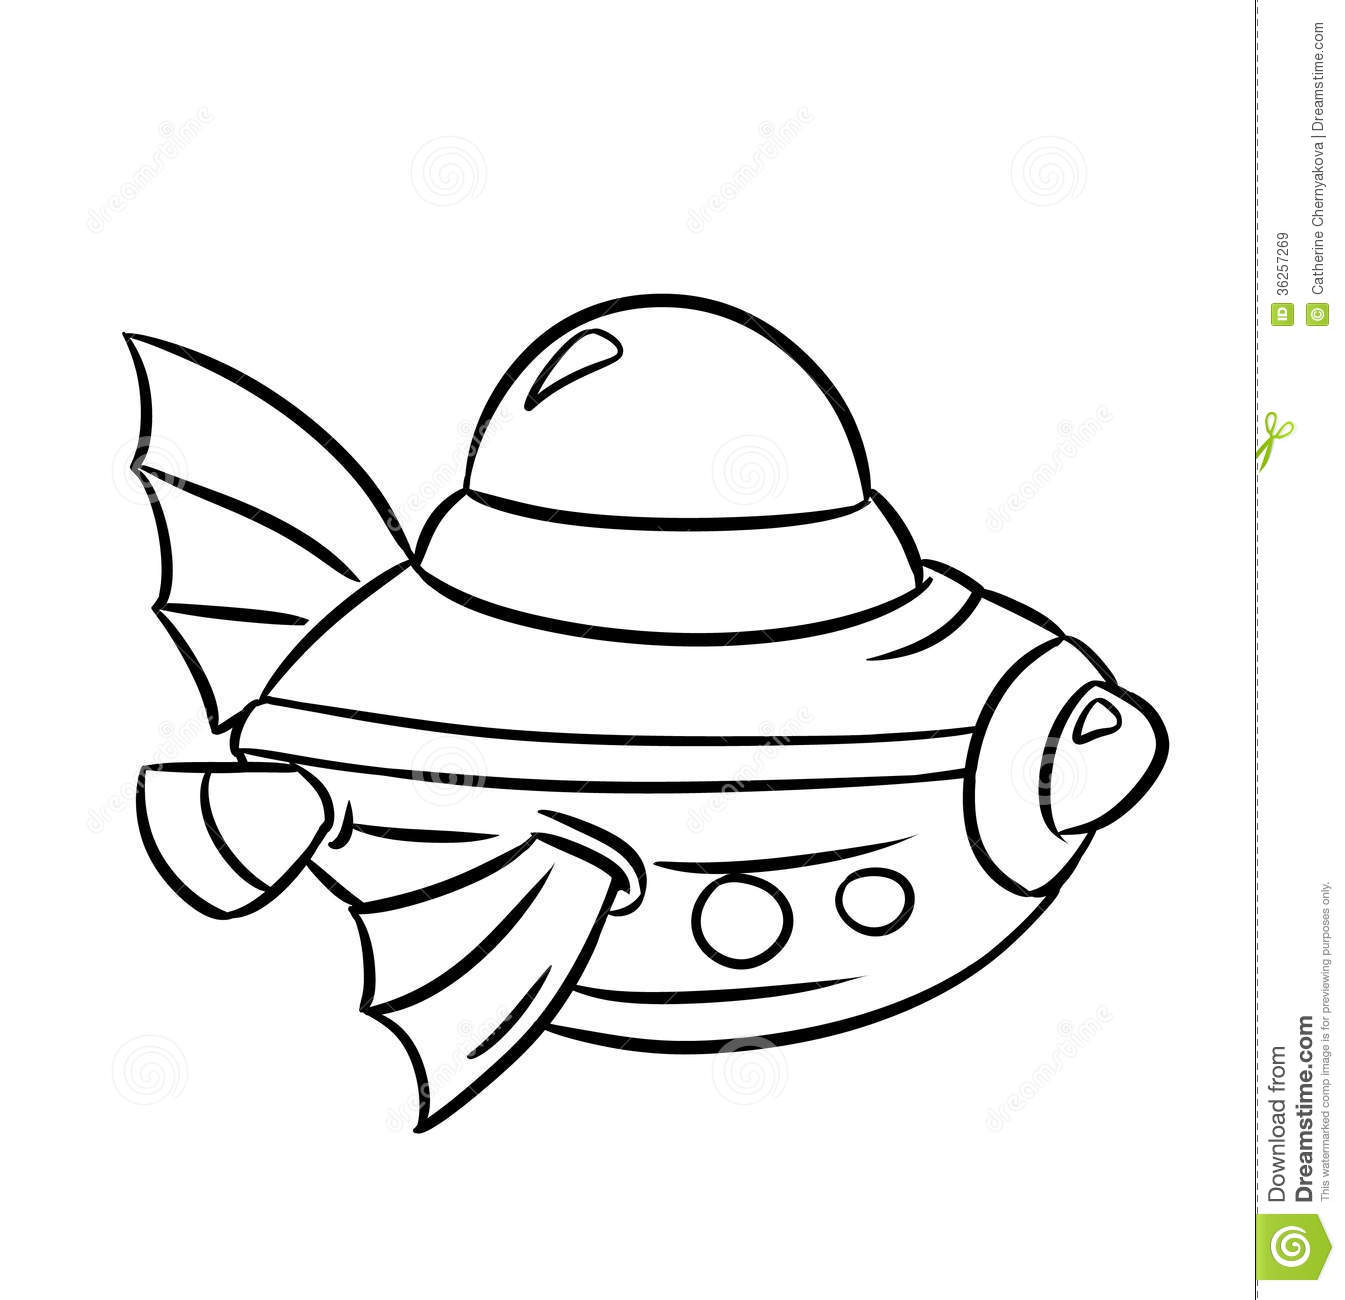 Bathyscaphe Coloring Pages Royalty Free Stock Images